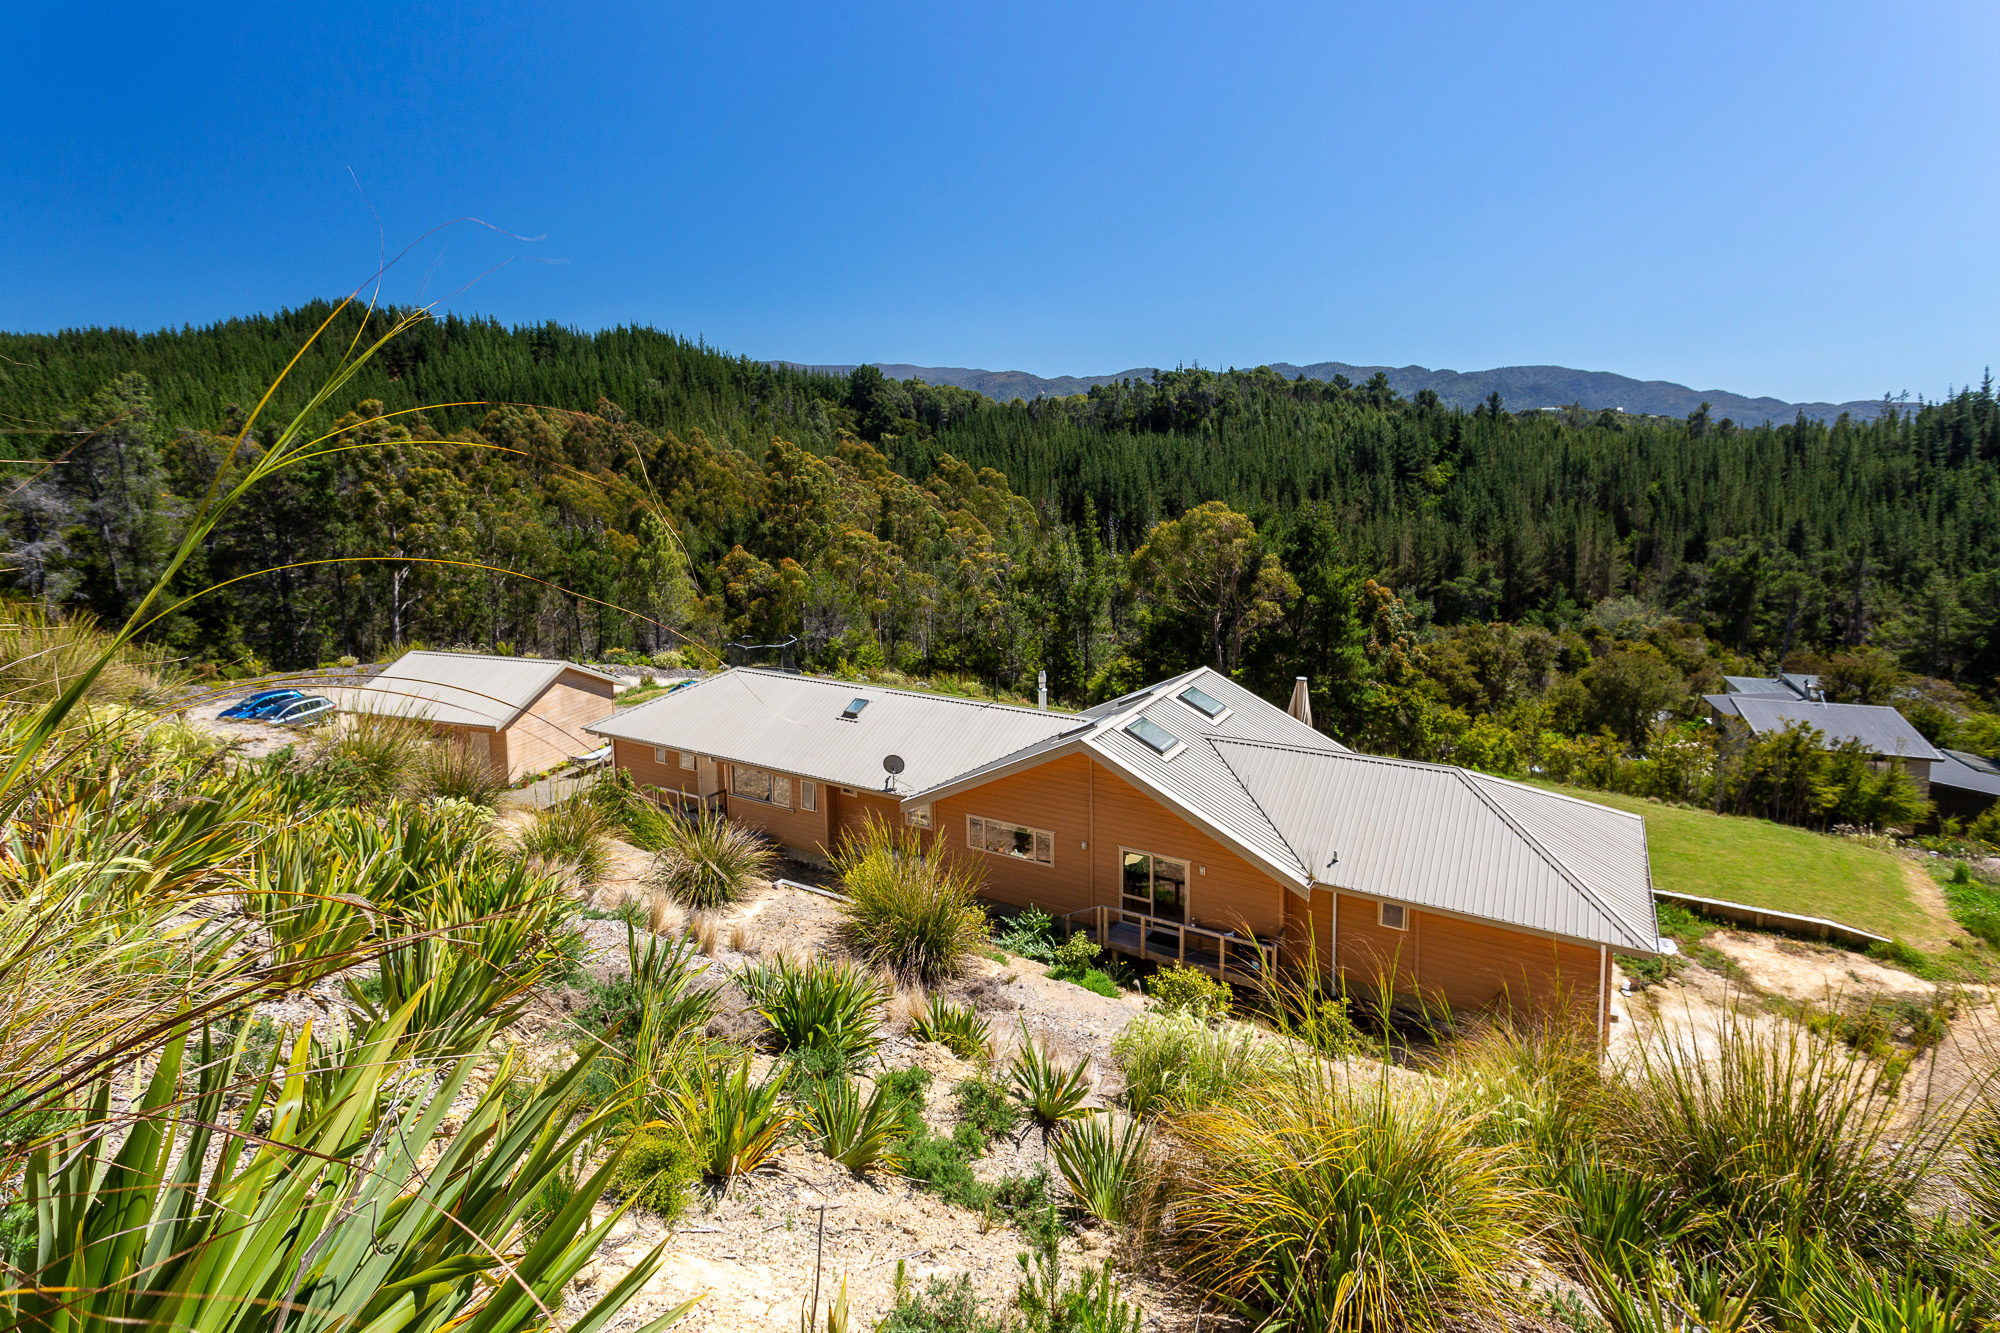 Lockwood Kaiteriteri home with Vertical Grain pine exterior